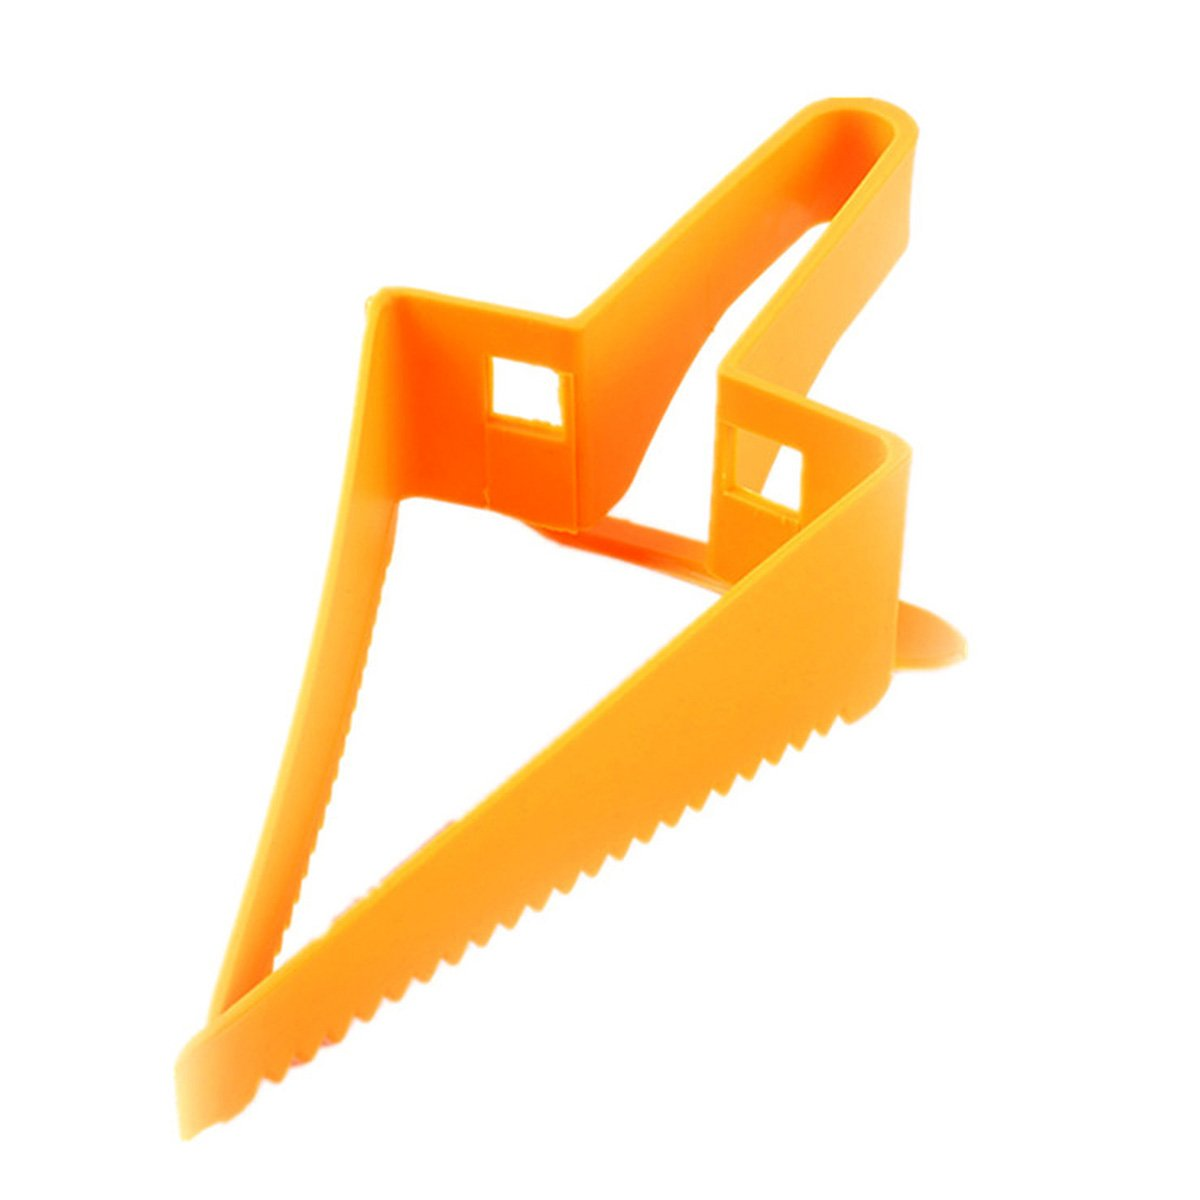 Nrpfell Triangle-Design Adjustable Cake Cutter Baking Tool Cake Slicer Baking Cutter Tool by Nrpfell (Image #1)